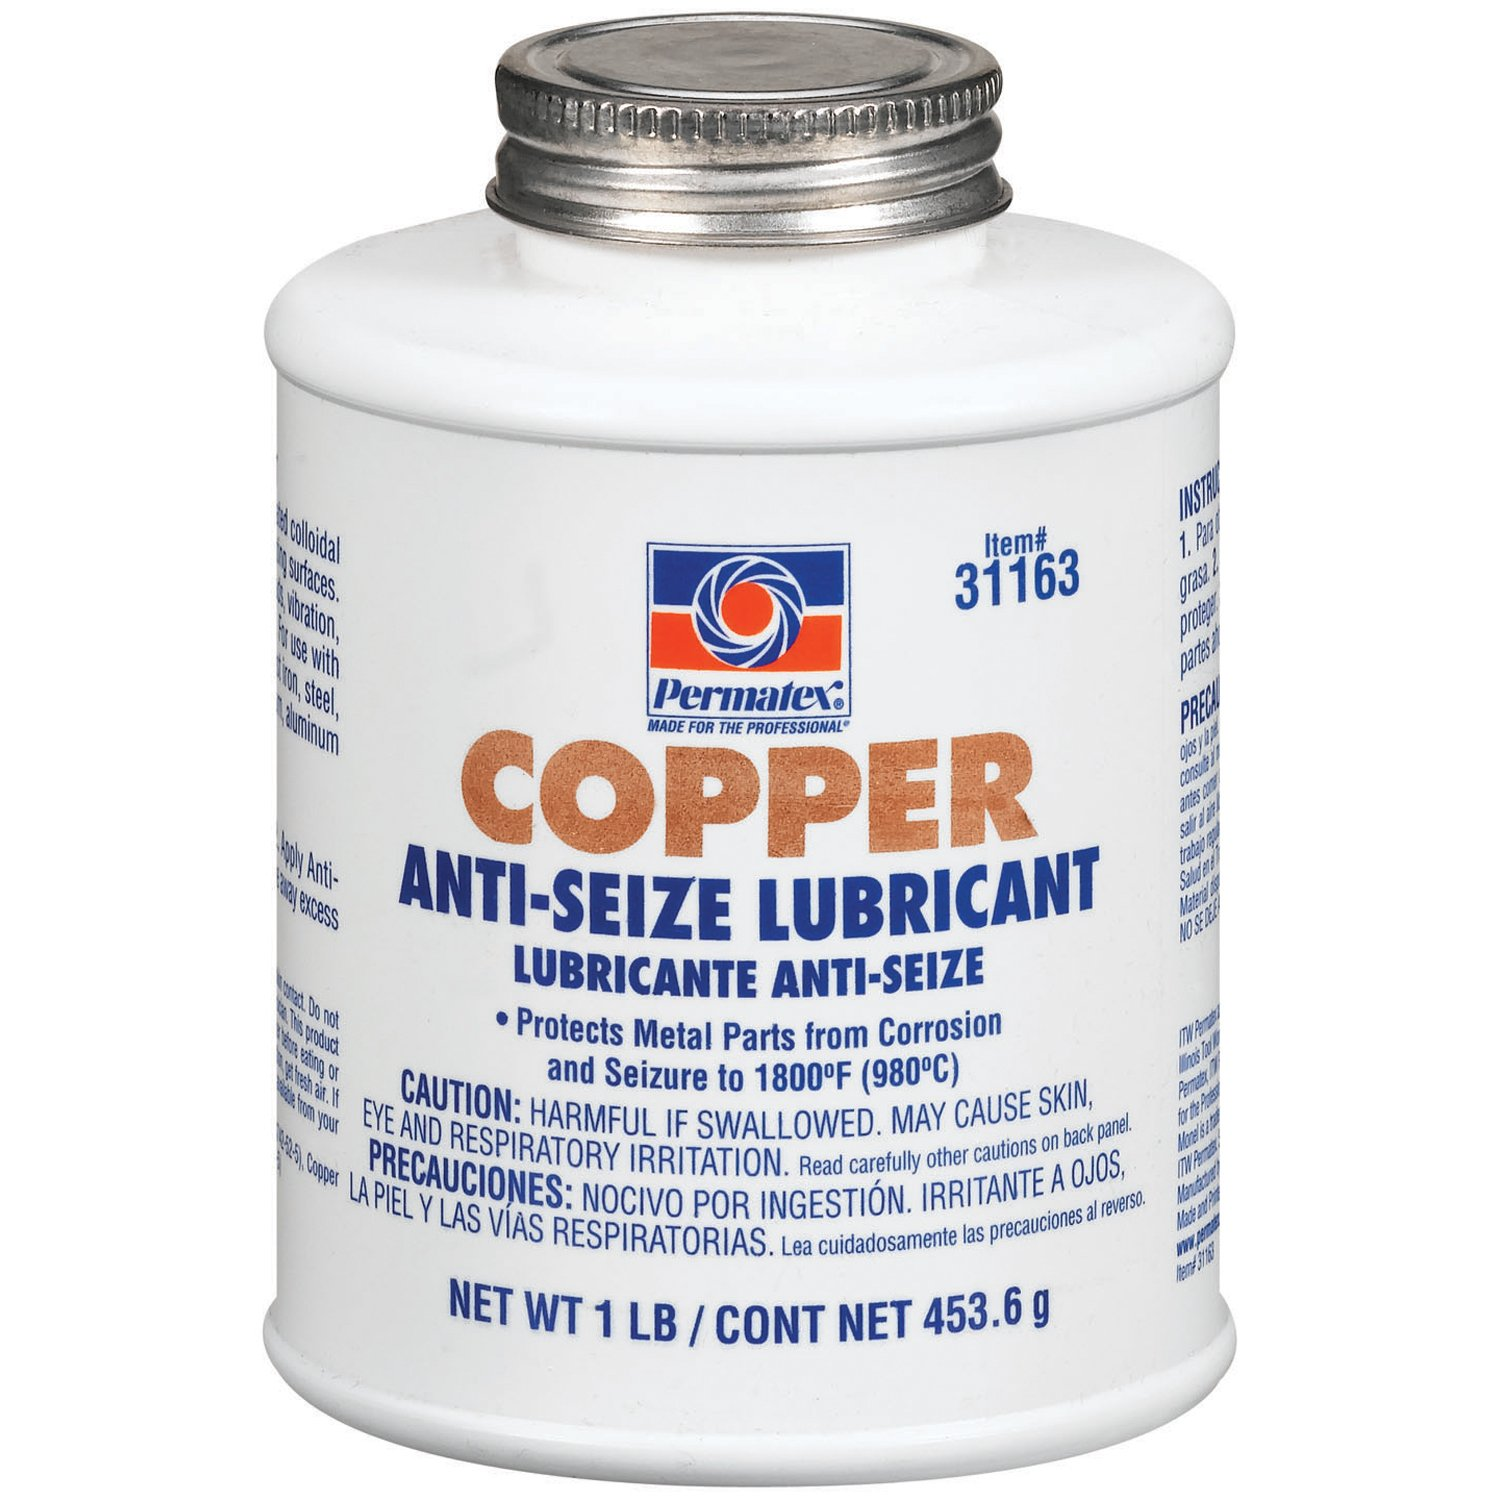 Permatex 31163-12PK Copper Anti-Seize Lubricant, 1 lb (Pack of 12) by Permatex